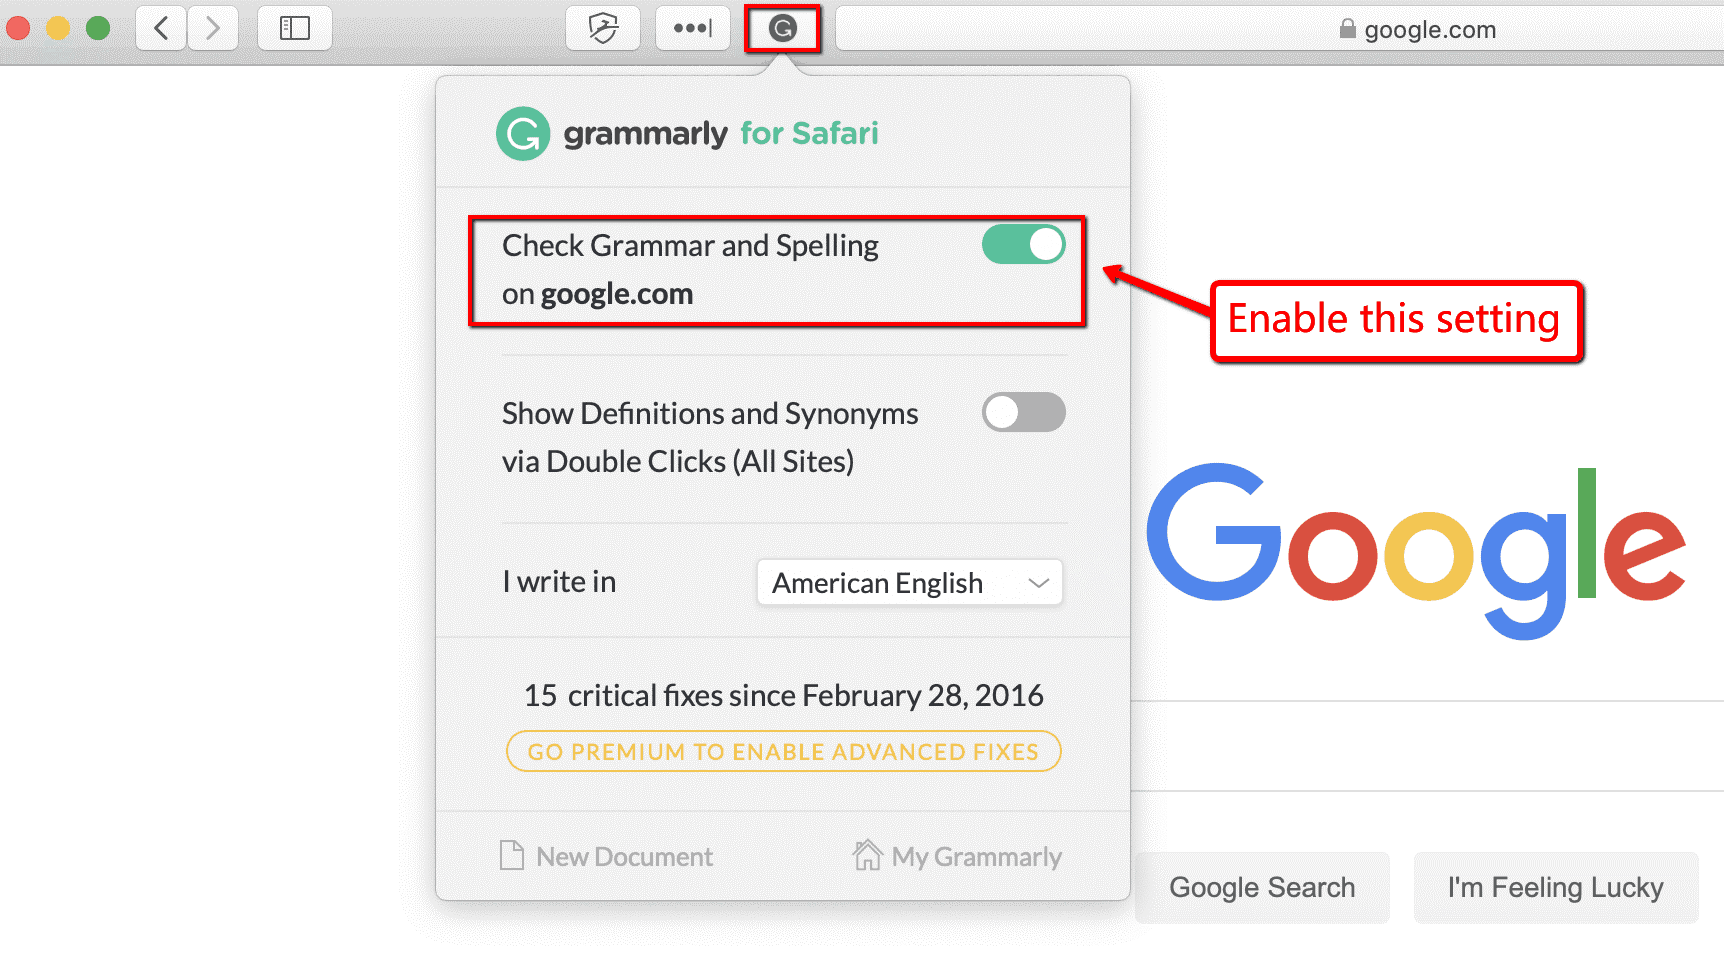 grammarly check grammer and spelling option